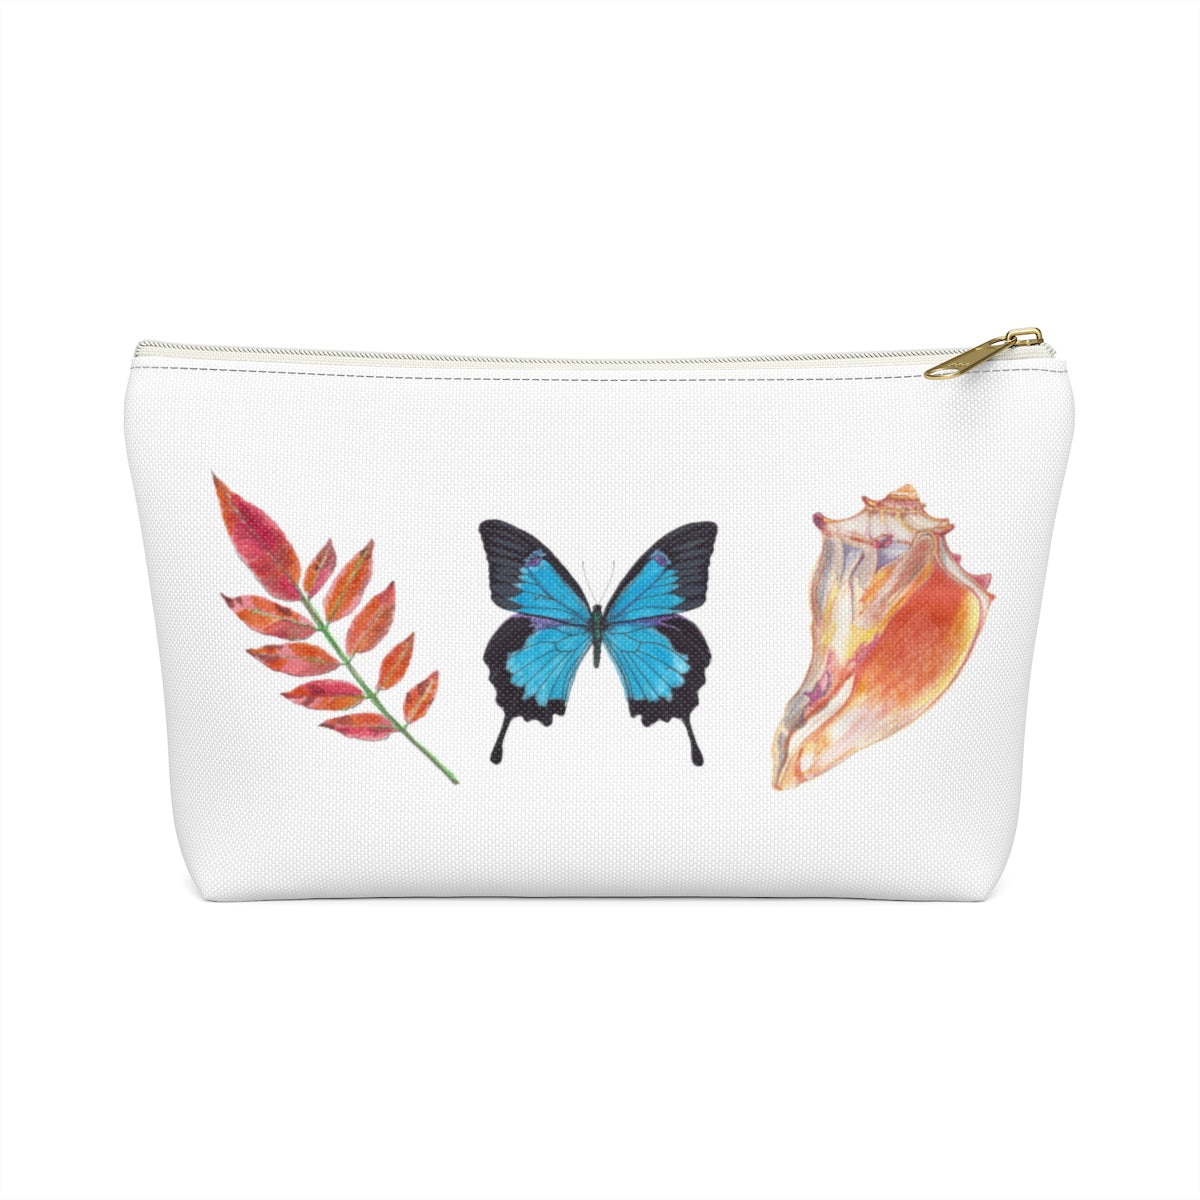 Graphic Design Accessory Pouch - Falling Leaf Card Co.